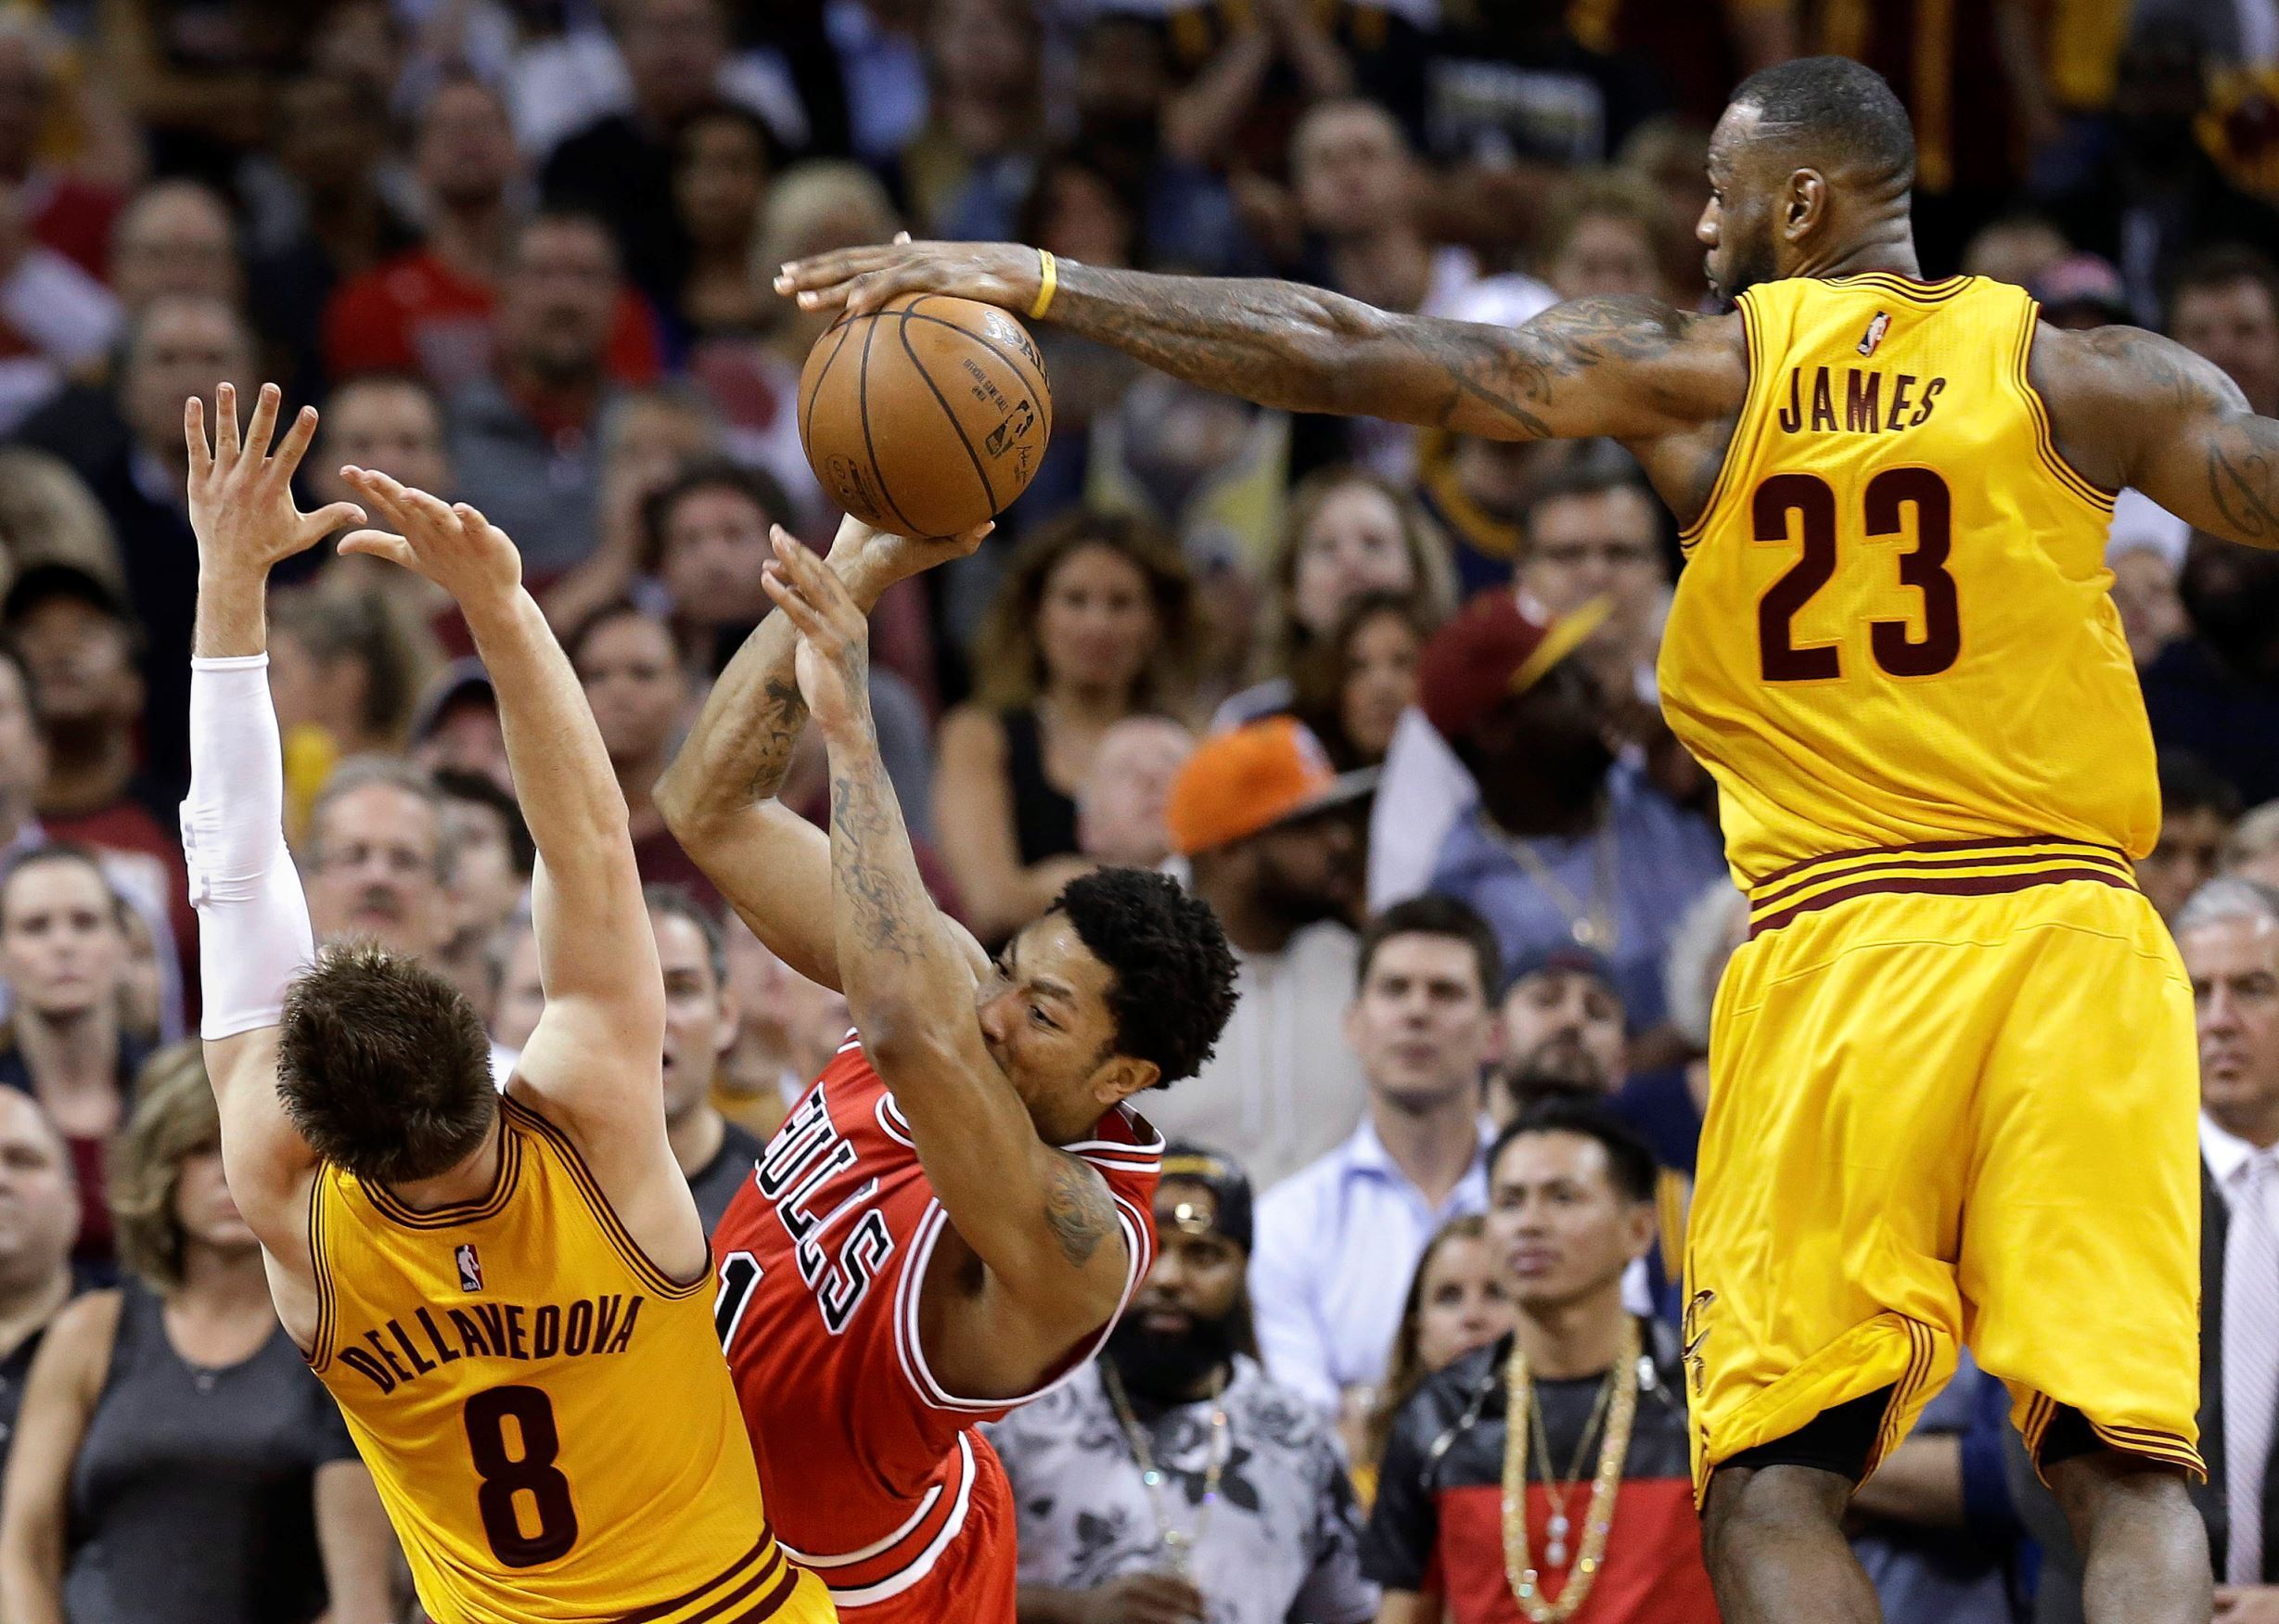 Cleveland Cavaliers forward LeBron James blocks a shot by